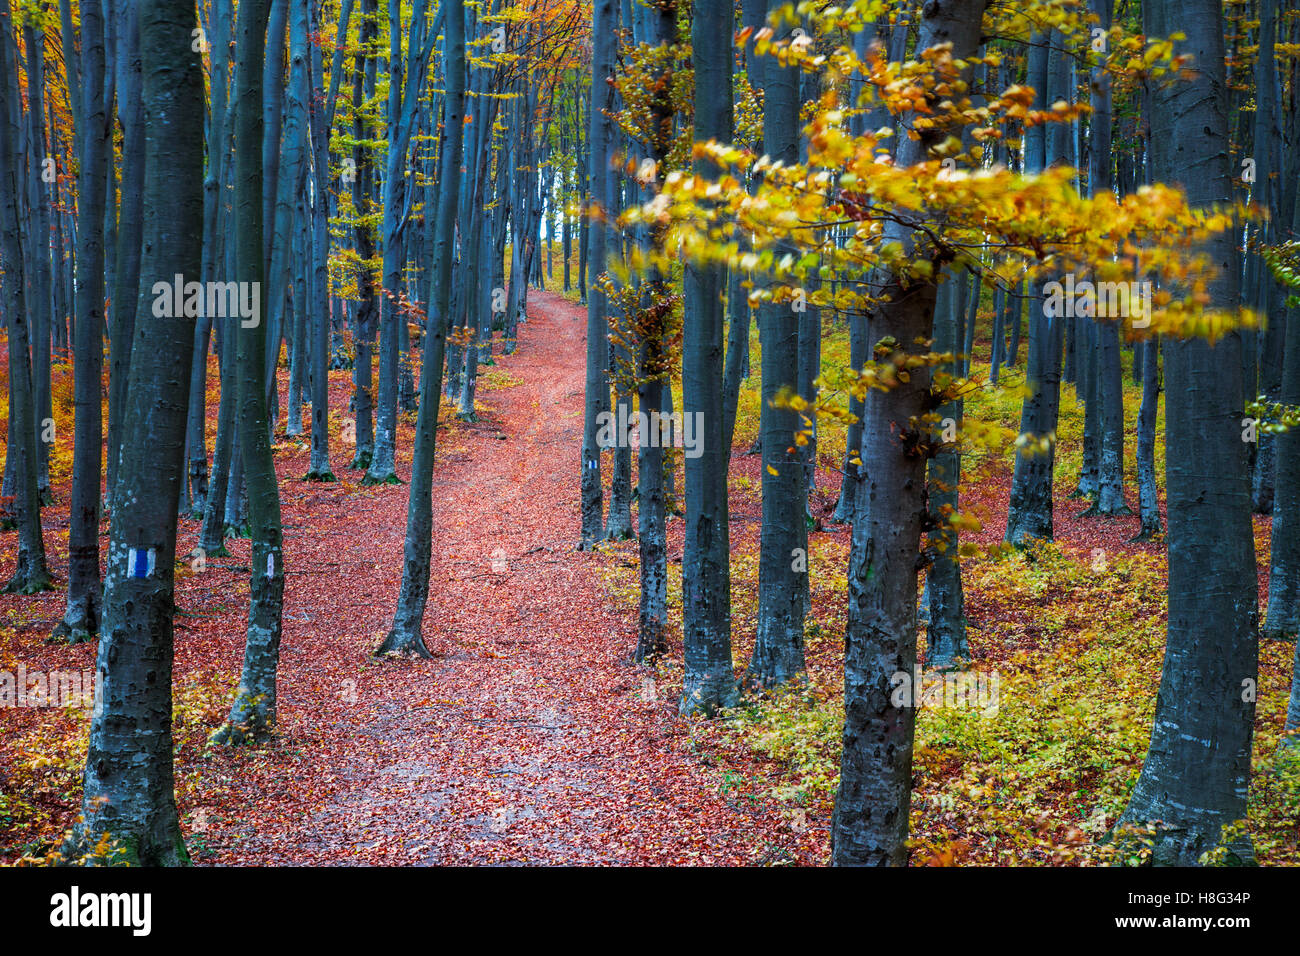 Path through the forest in late autumn season - Stock Image